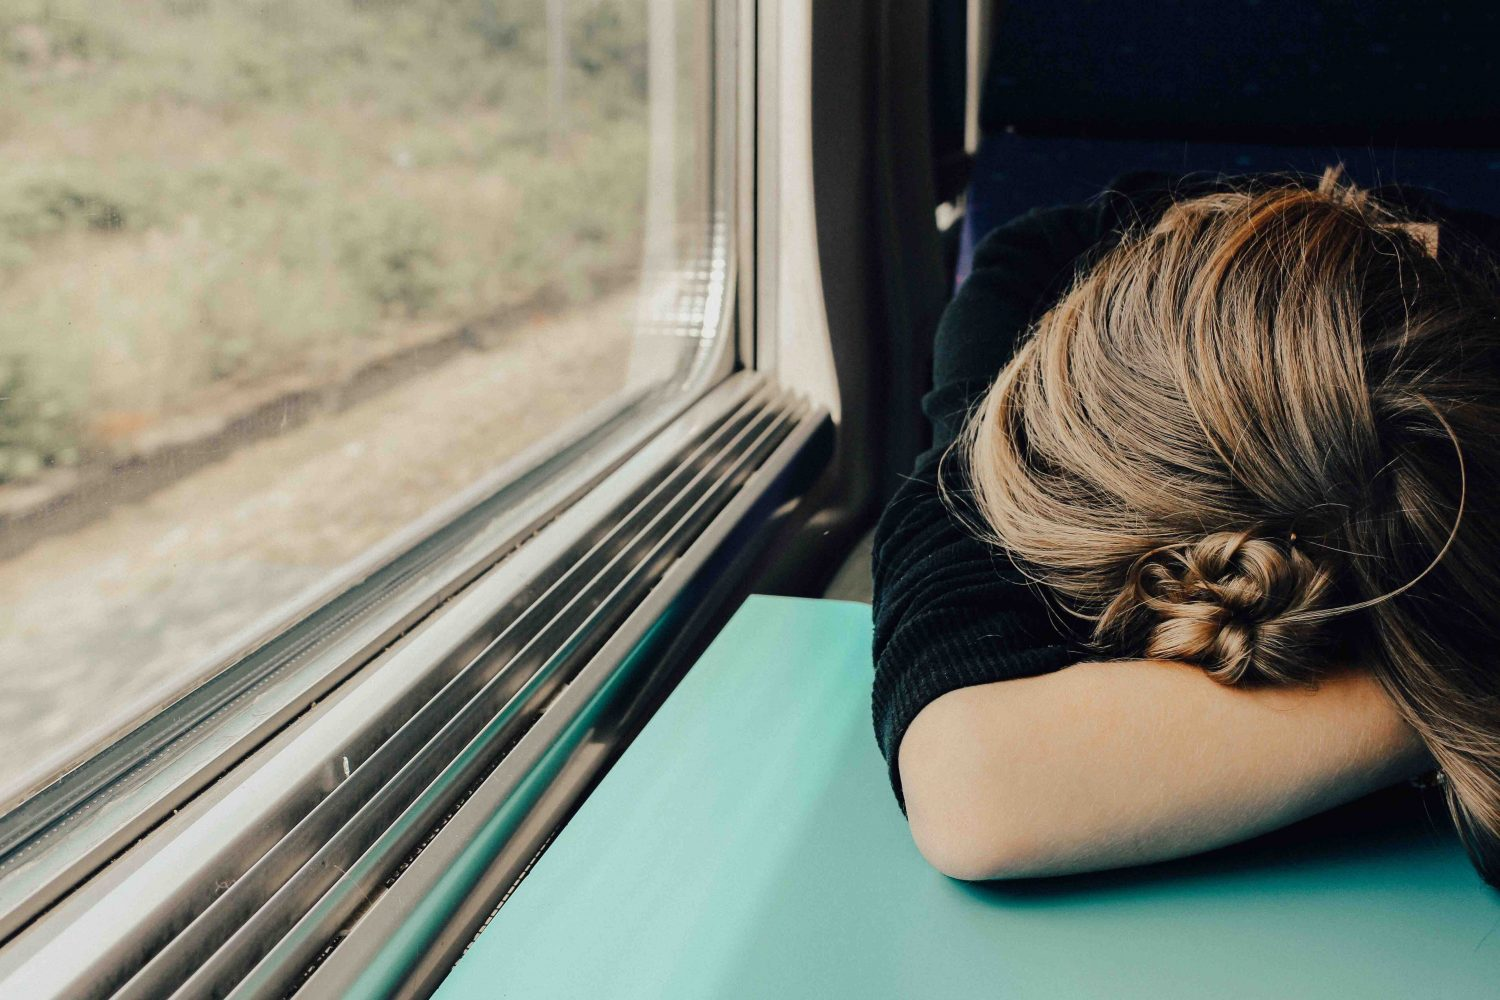 tired person on train